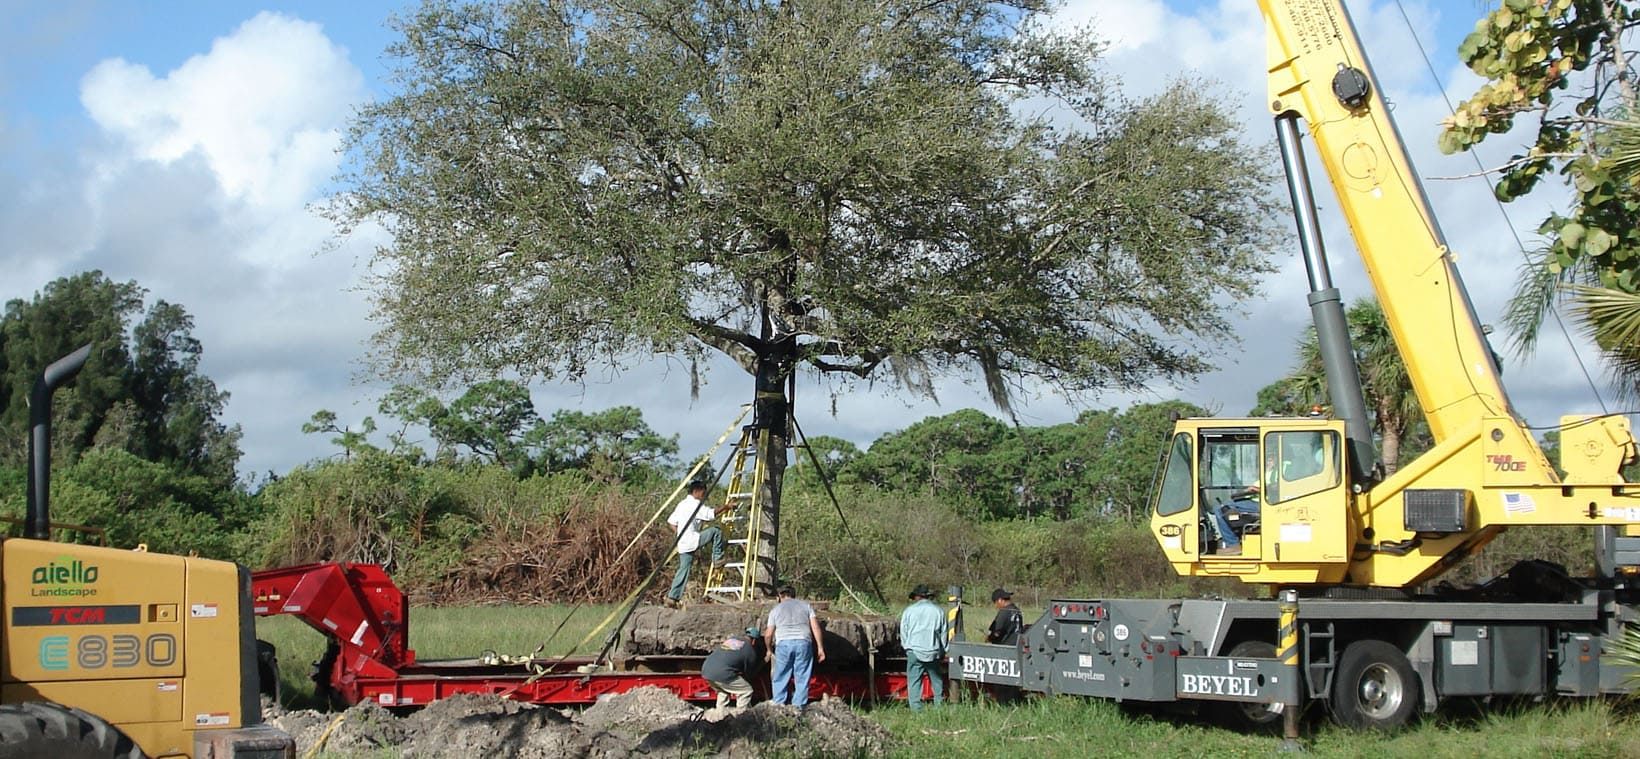 Aiello-Landscape_tree-relocation_Hobe-Sound